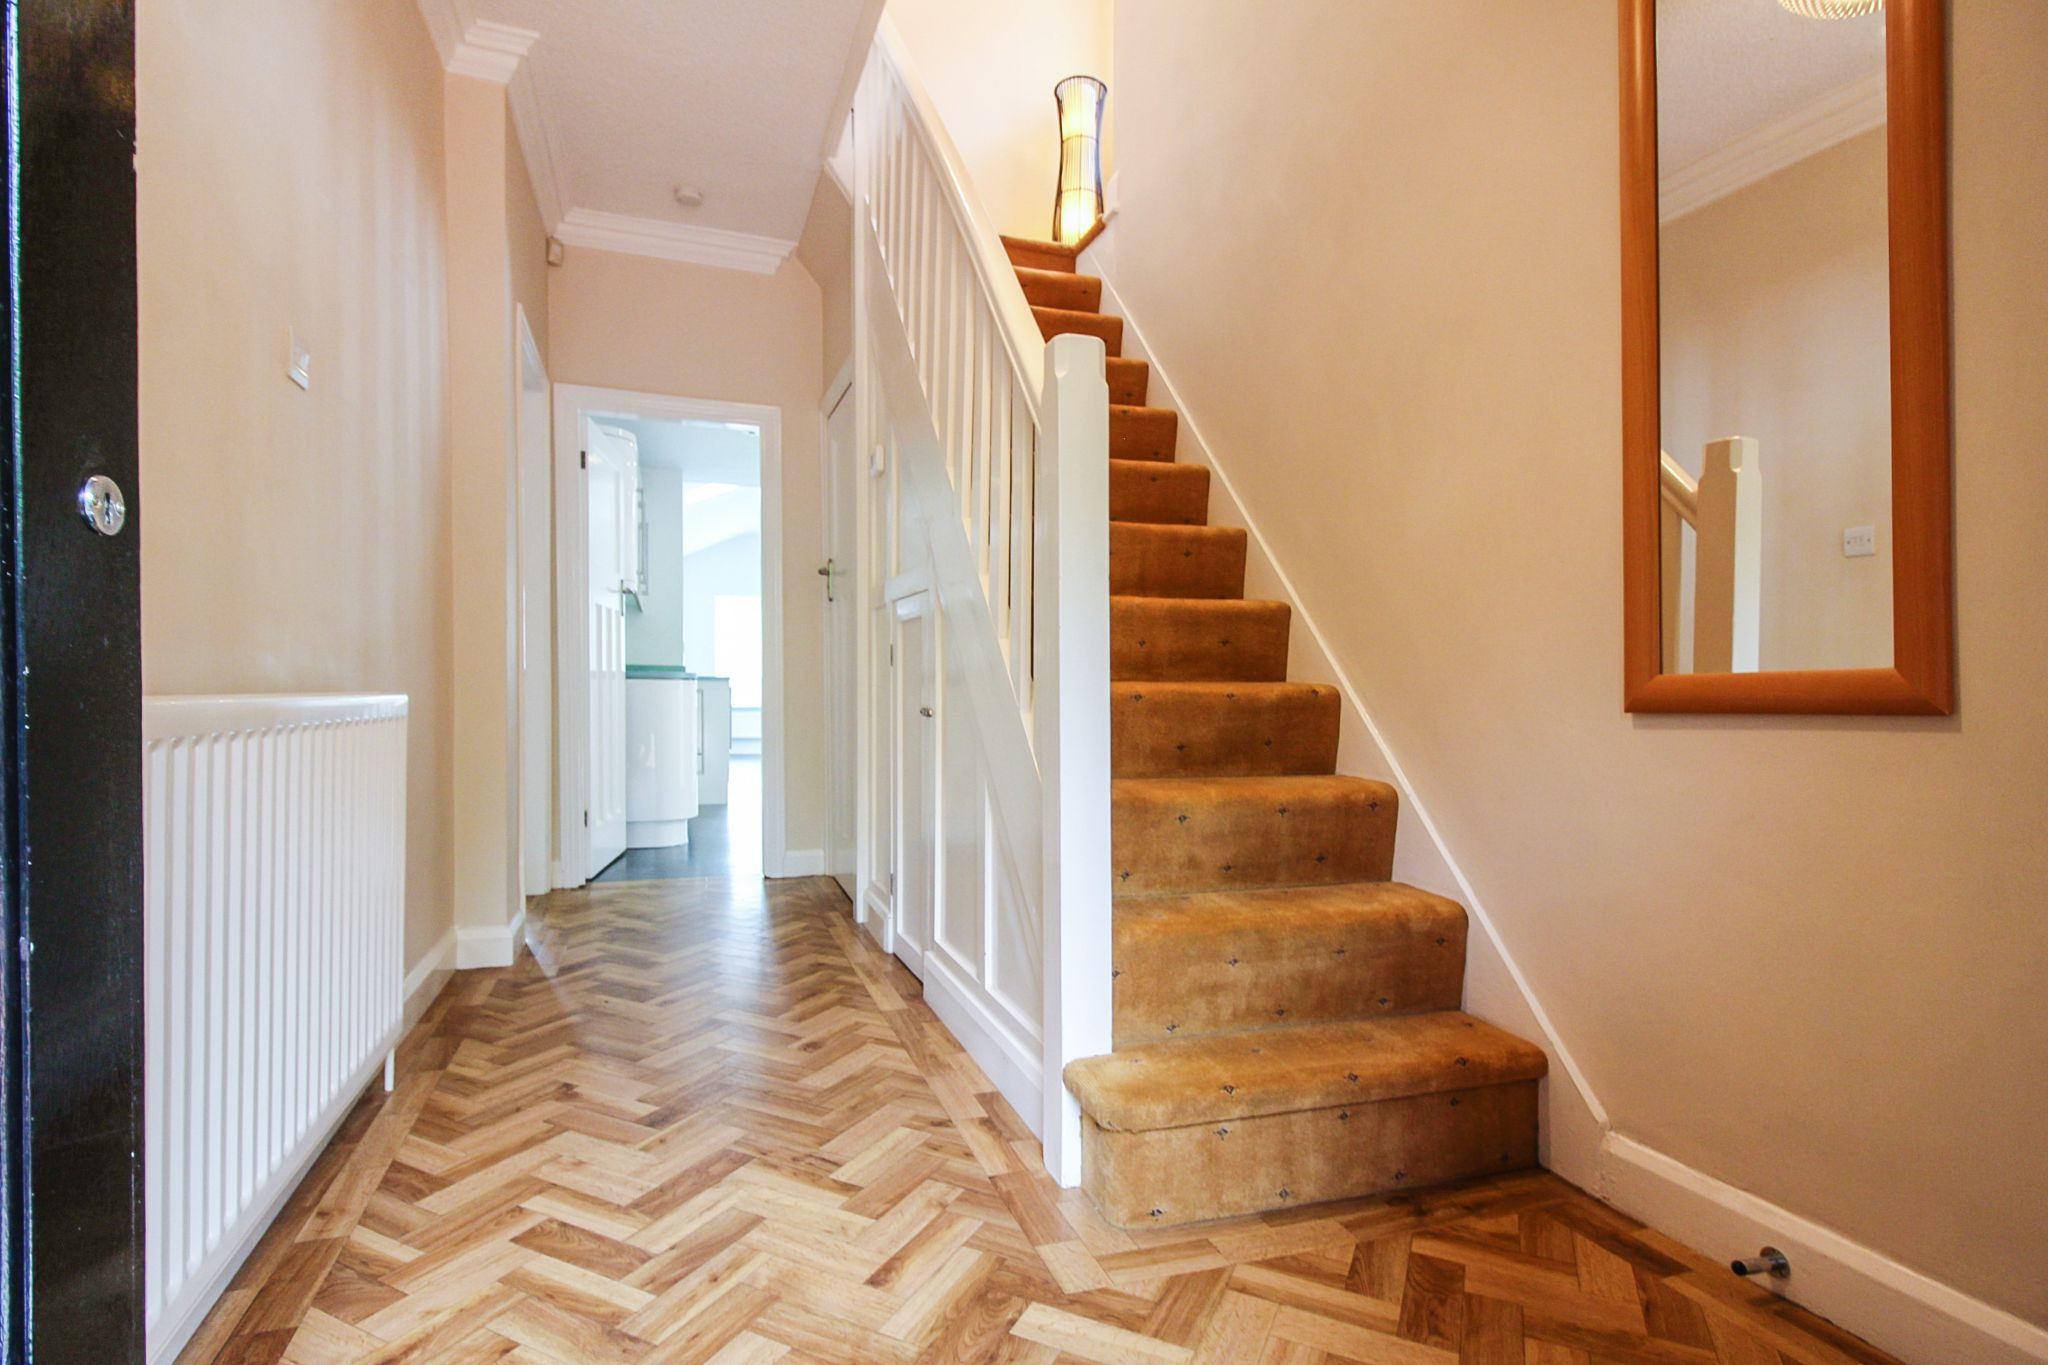 4 bedroom semi-detached house SSTC in Solihull - Photograph 6.